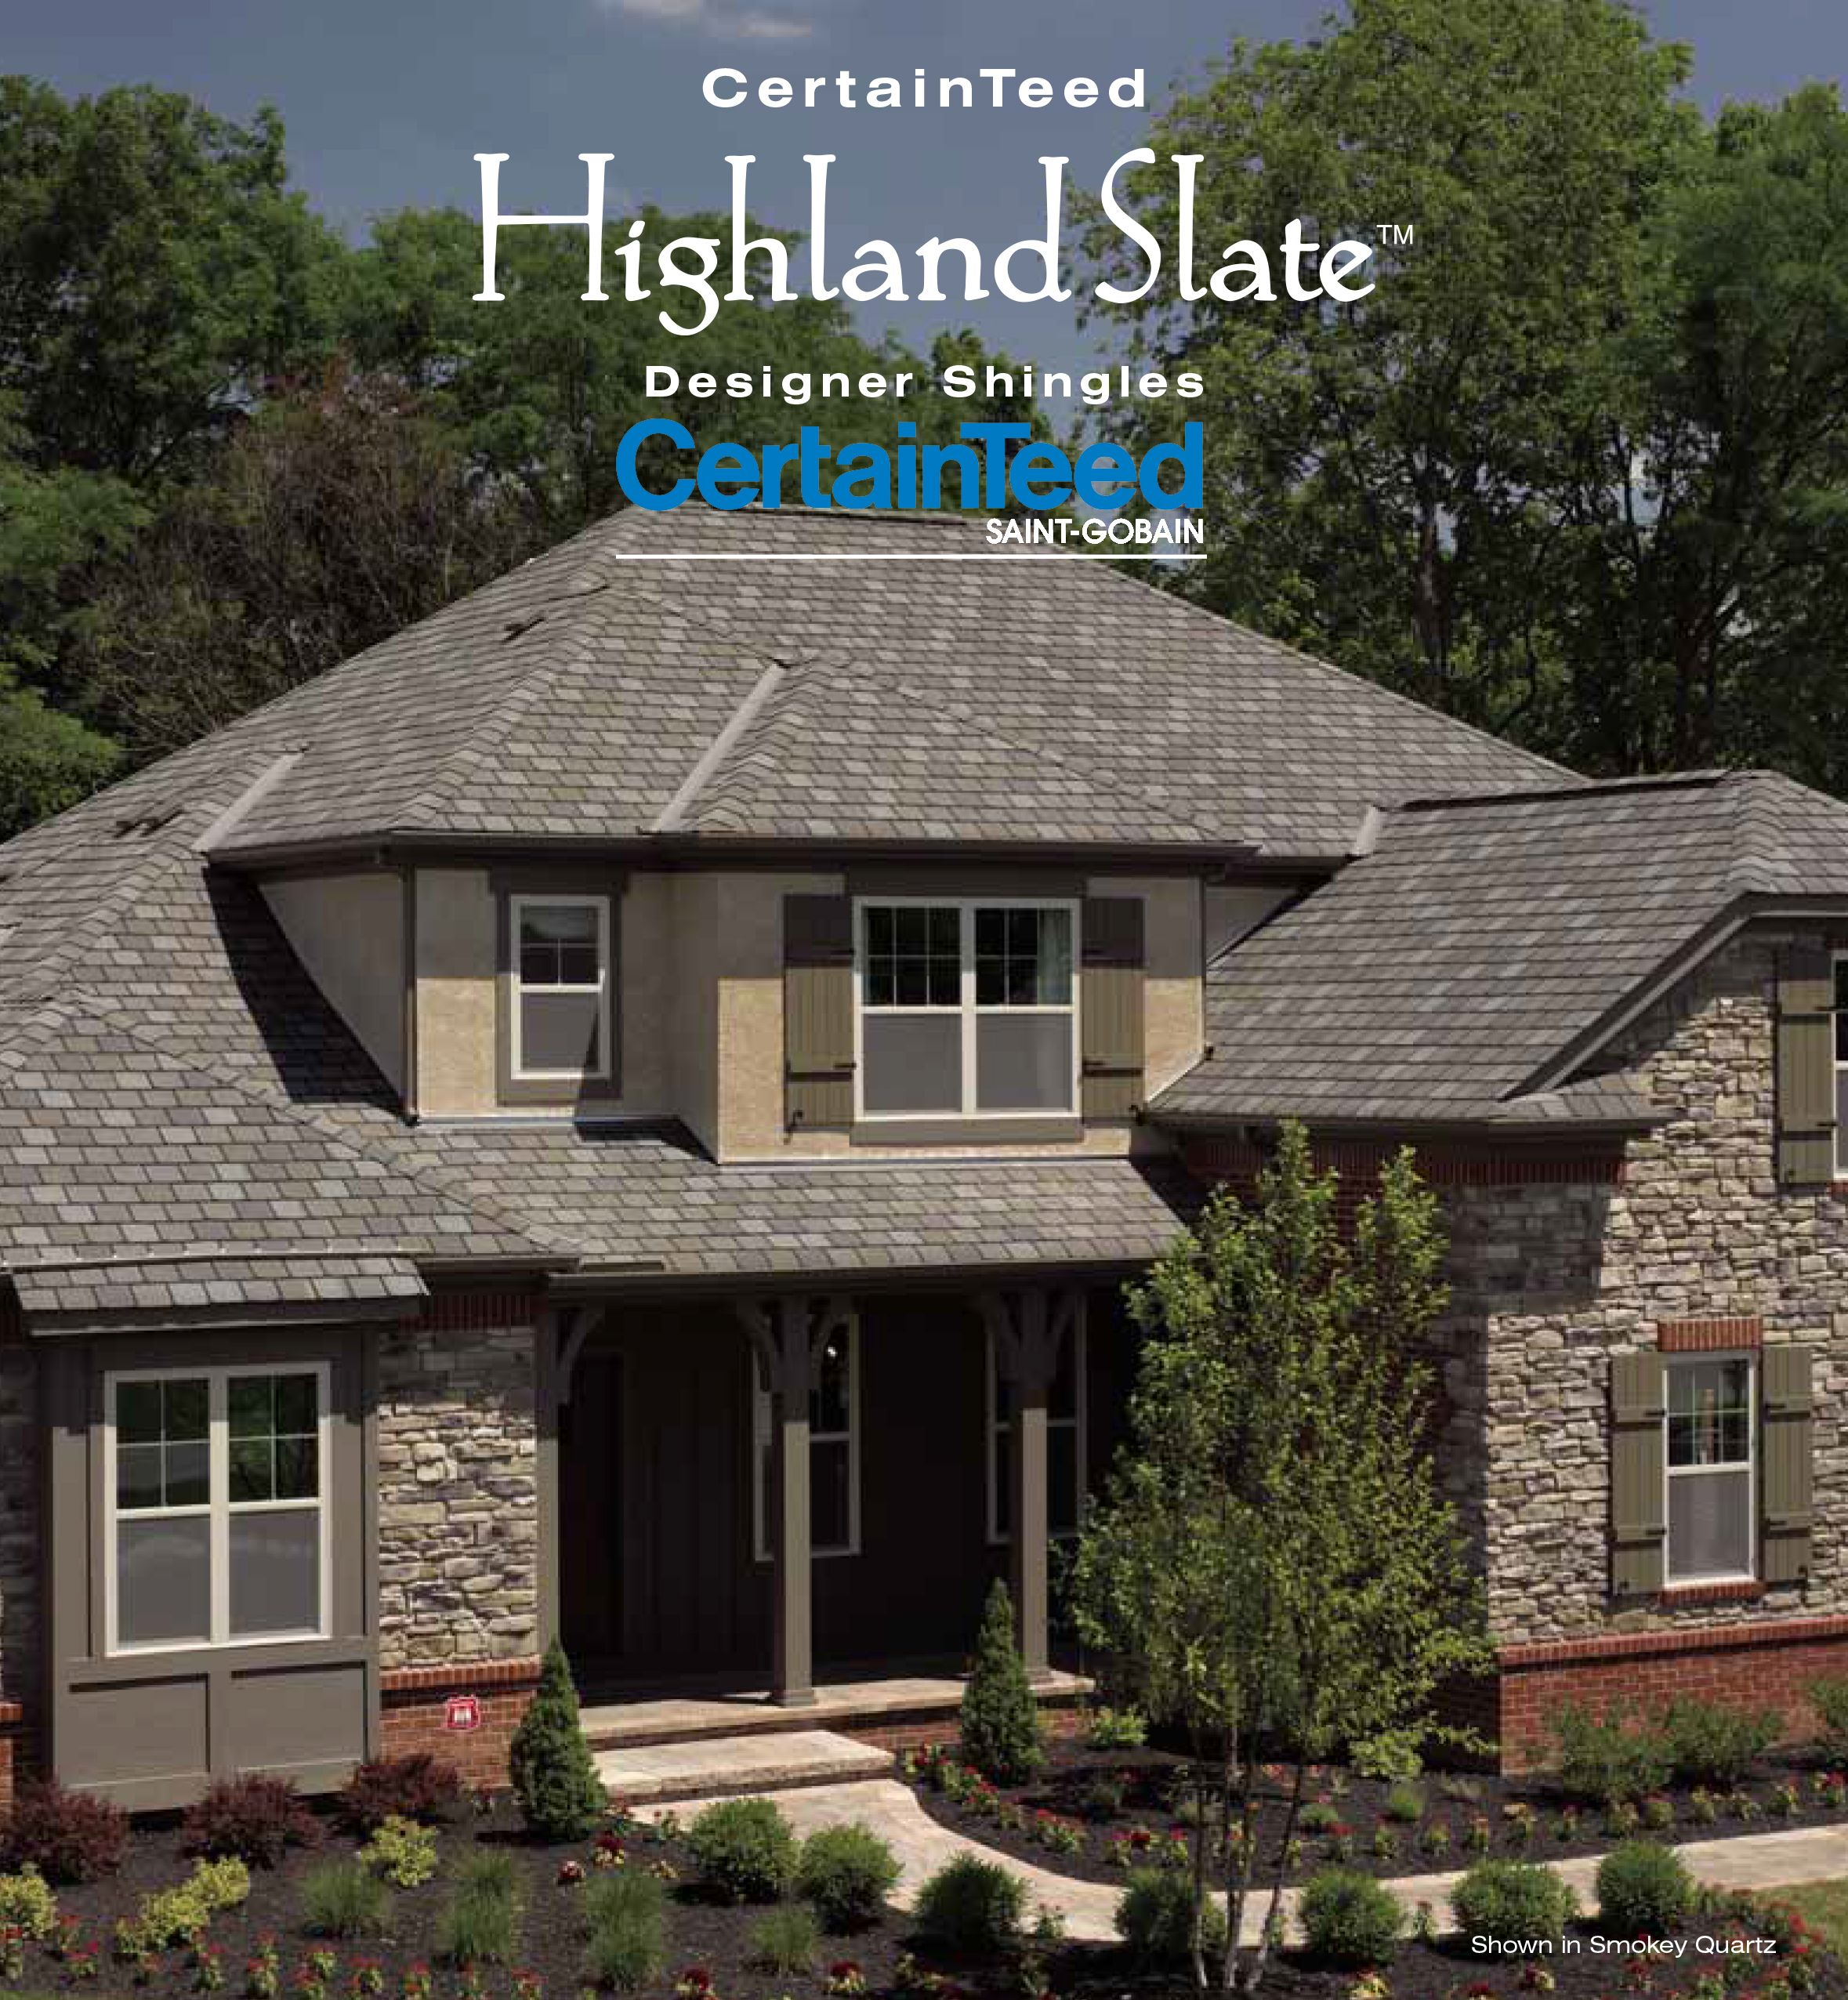 CertainTeed Highland Slate | Lasher Contracting Www.lashercontracting.com |  Voorhees, NJ |